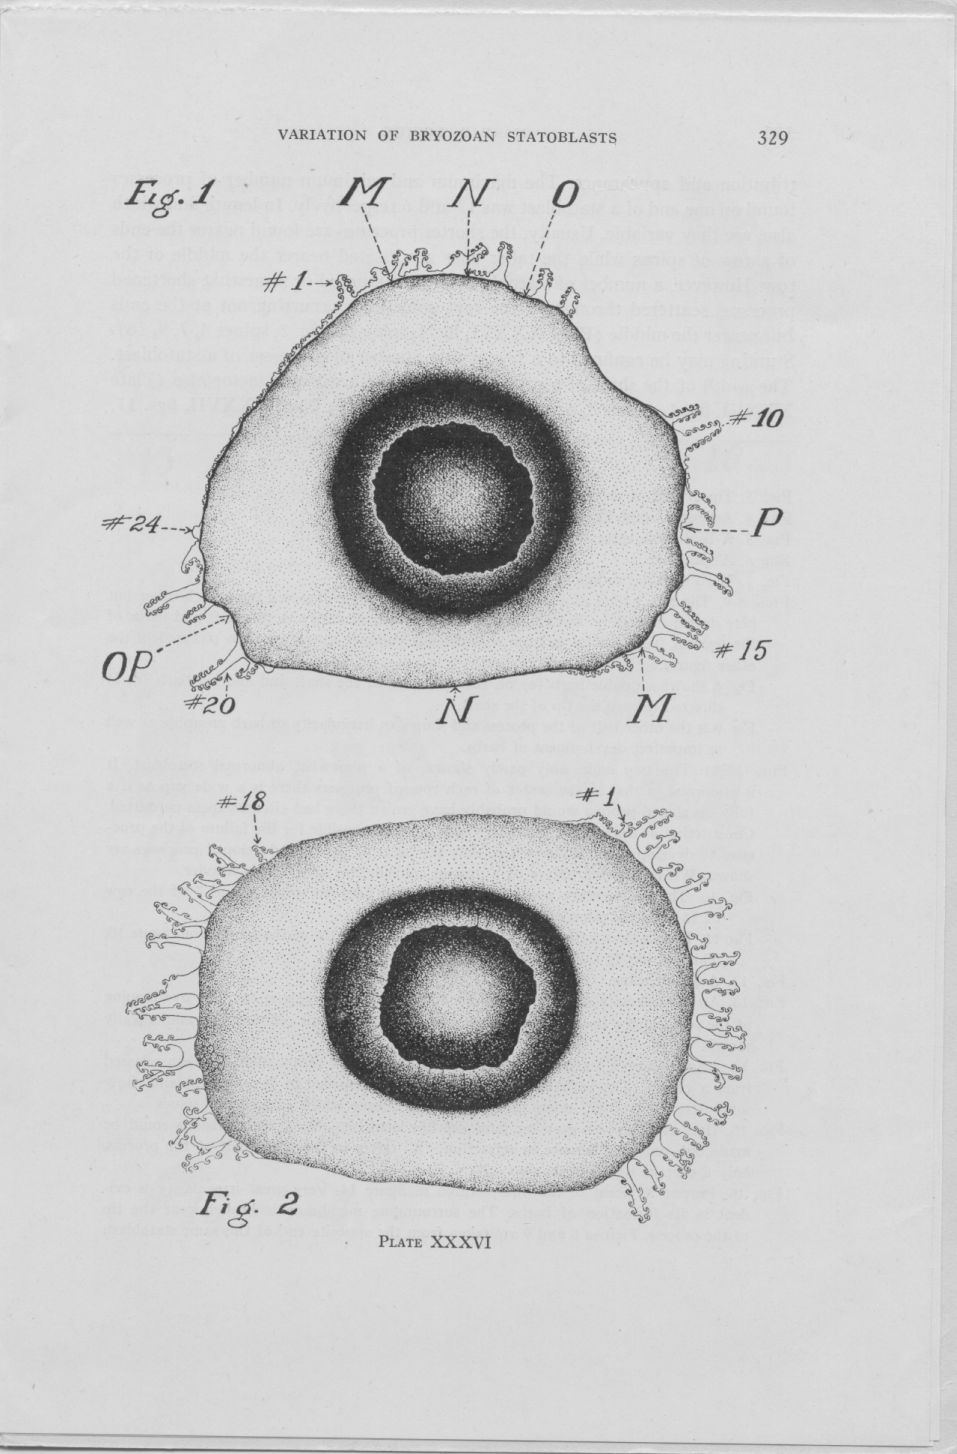 On the variation of statoblasts of Lophopodella carteri page 4